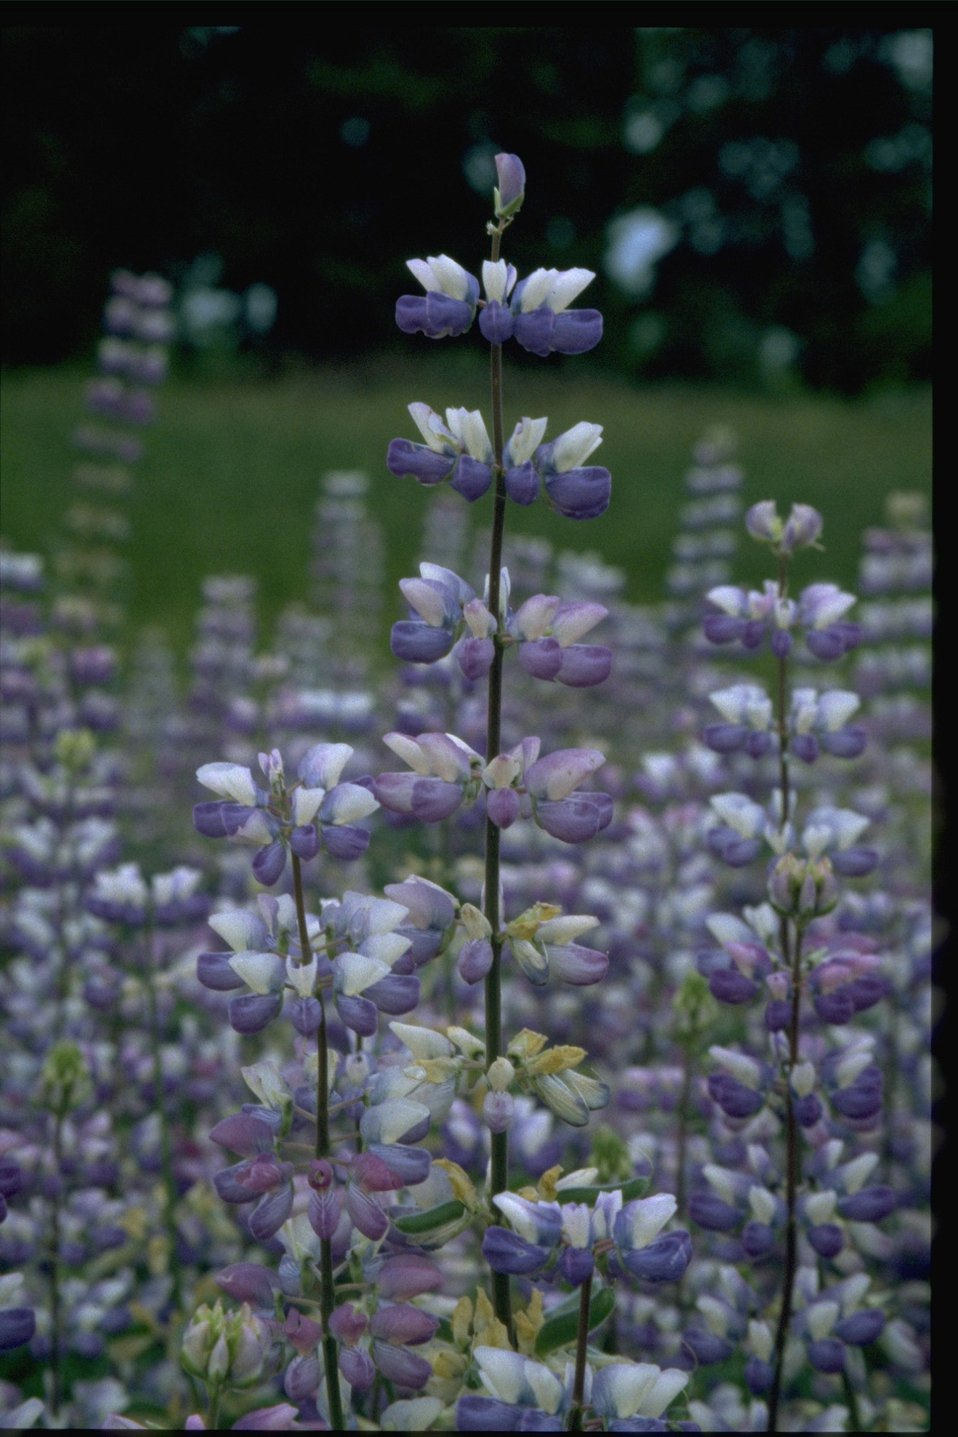 Closeup shot of lupine wildflowers (Lupinus arcticus).